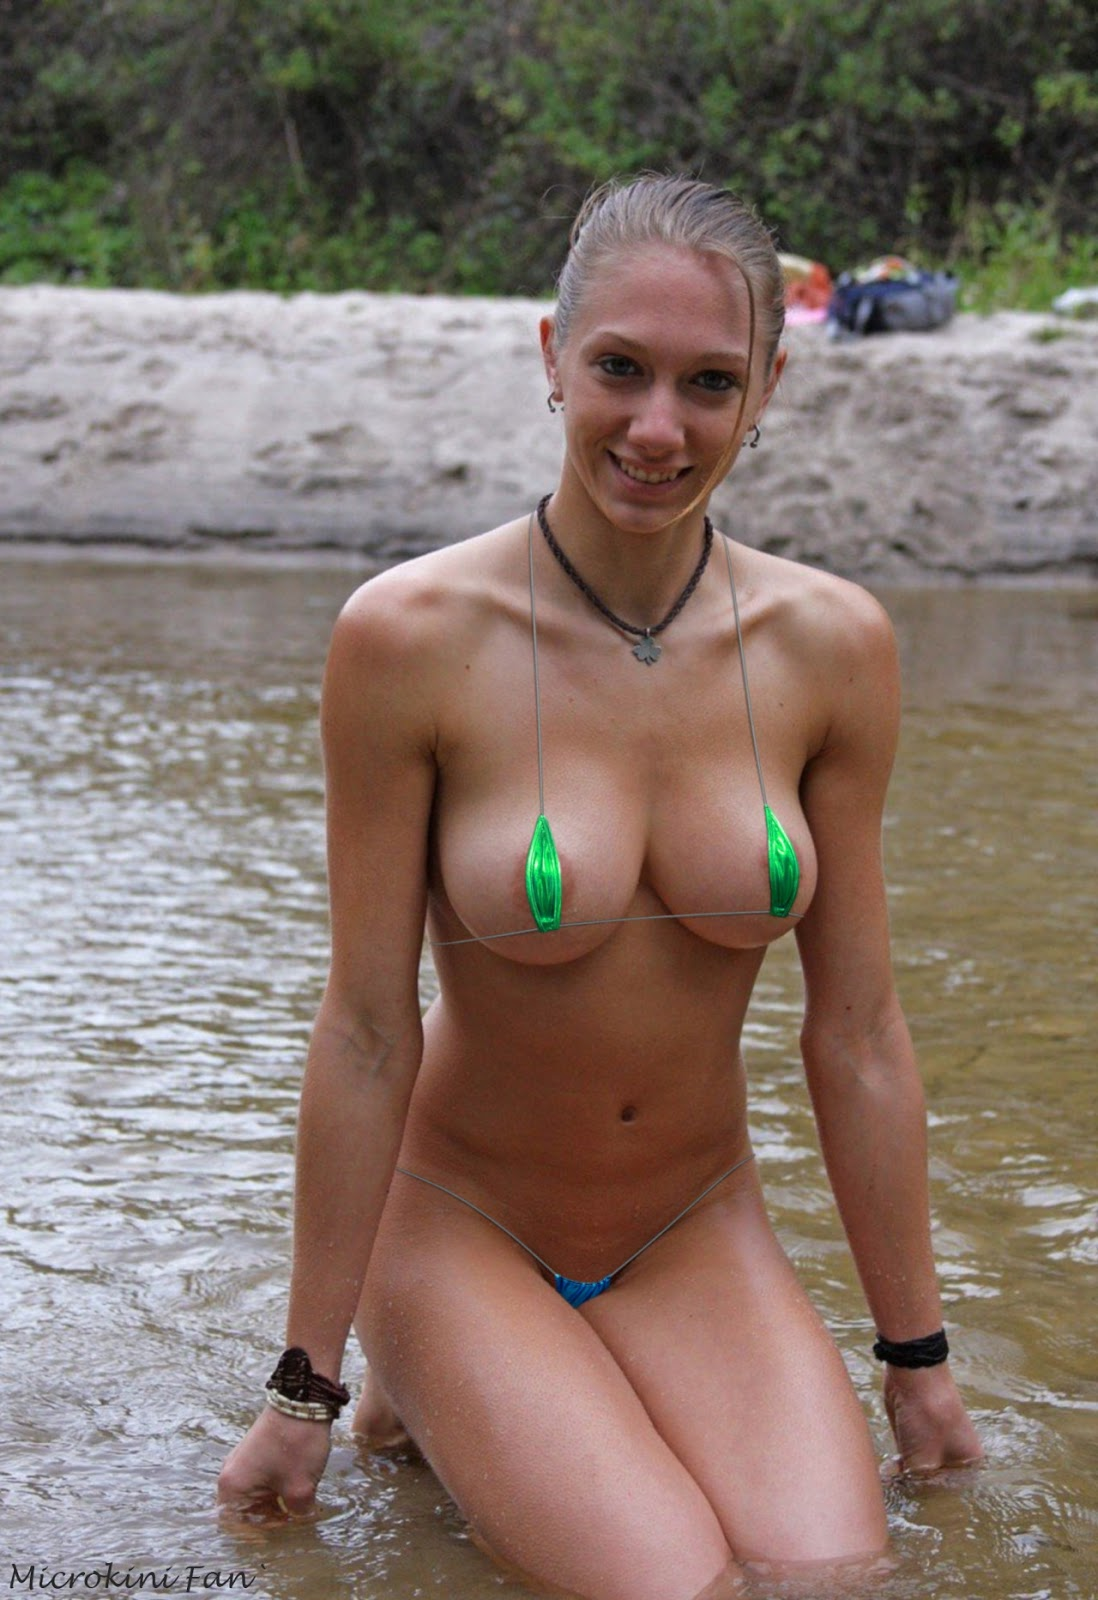 Sexy amateur girls in micro bikini what